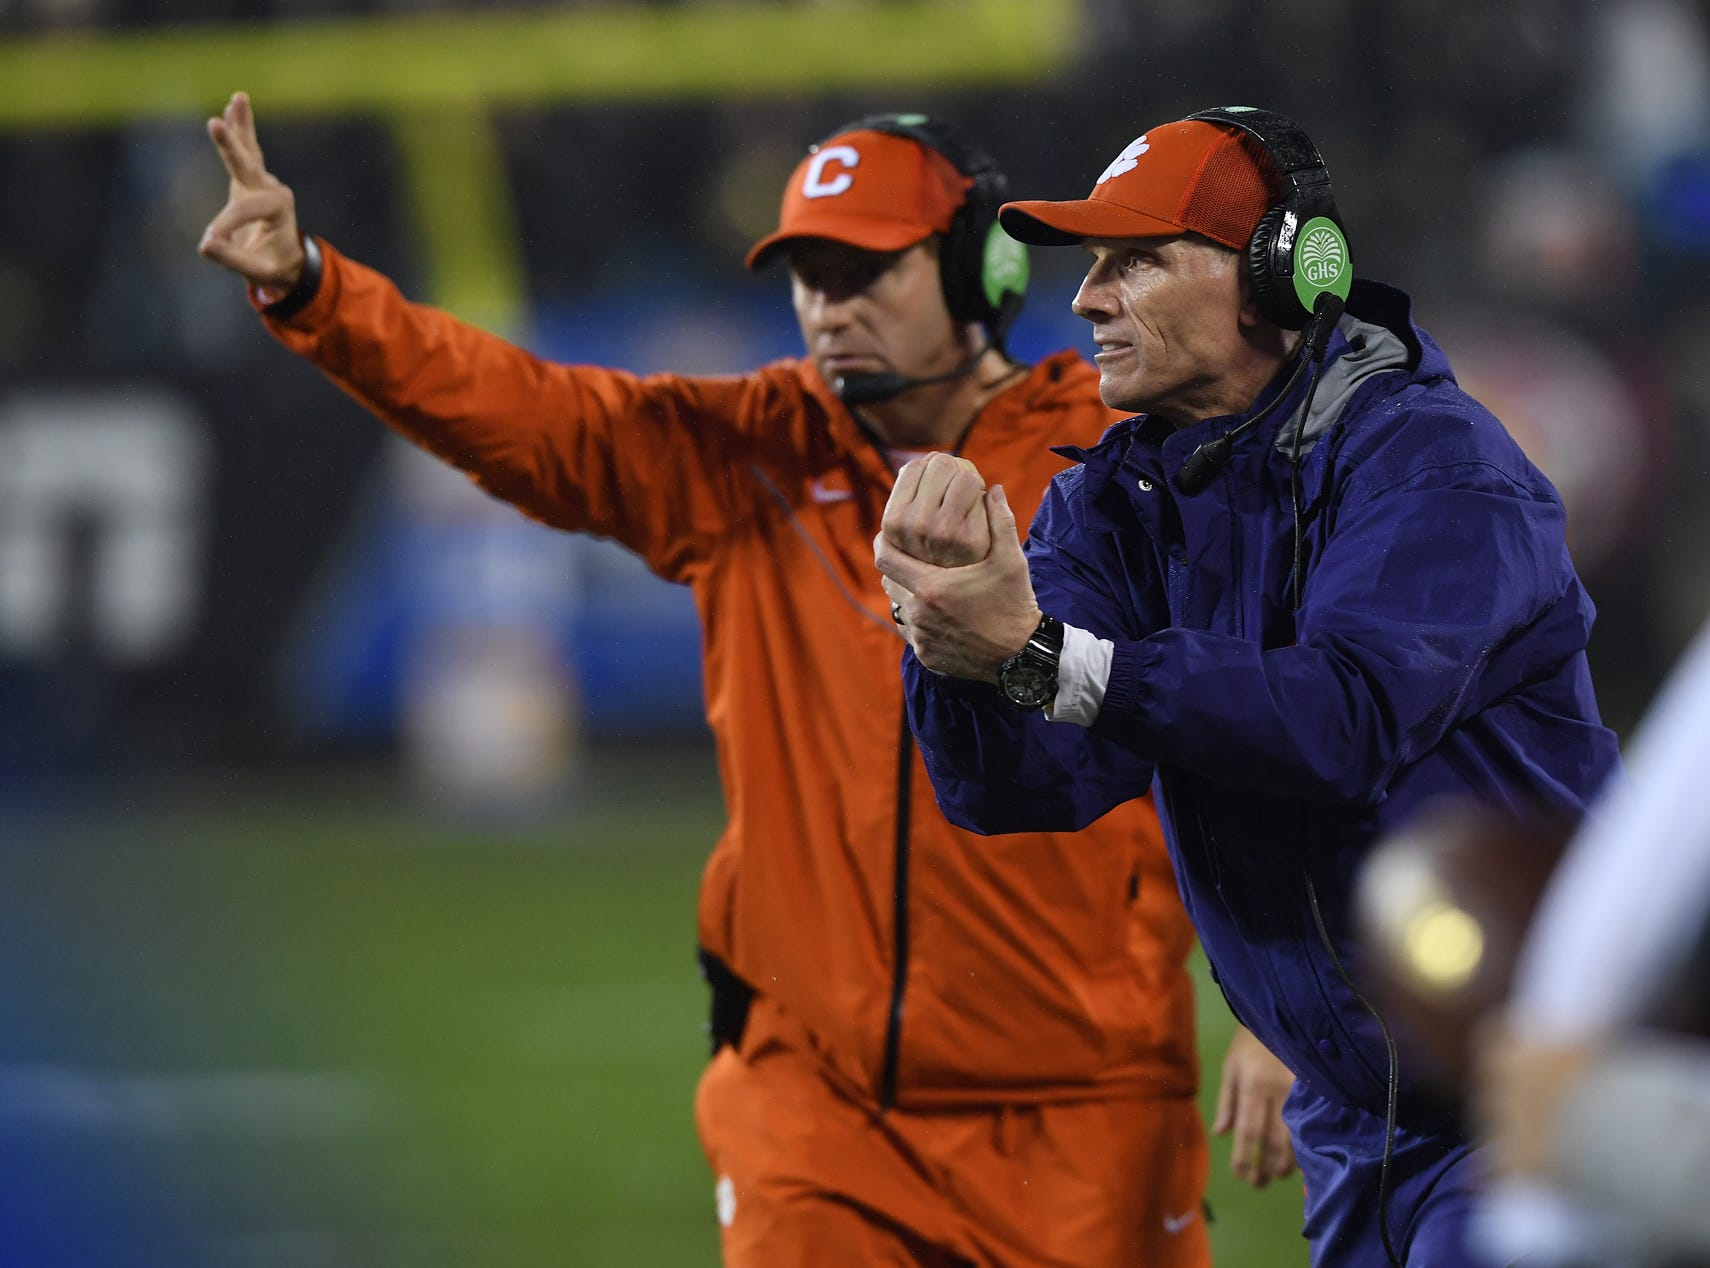 Clemson defensive coordinator Brent Venables and head coach Dabo Swinney coach against Pittsburgh during the 1st quarter of the Dr. Pepper ACC Championship at Bank of America Stadium in Charlotte, N.C. Saturday, December 1, 2018.